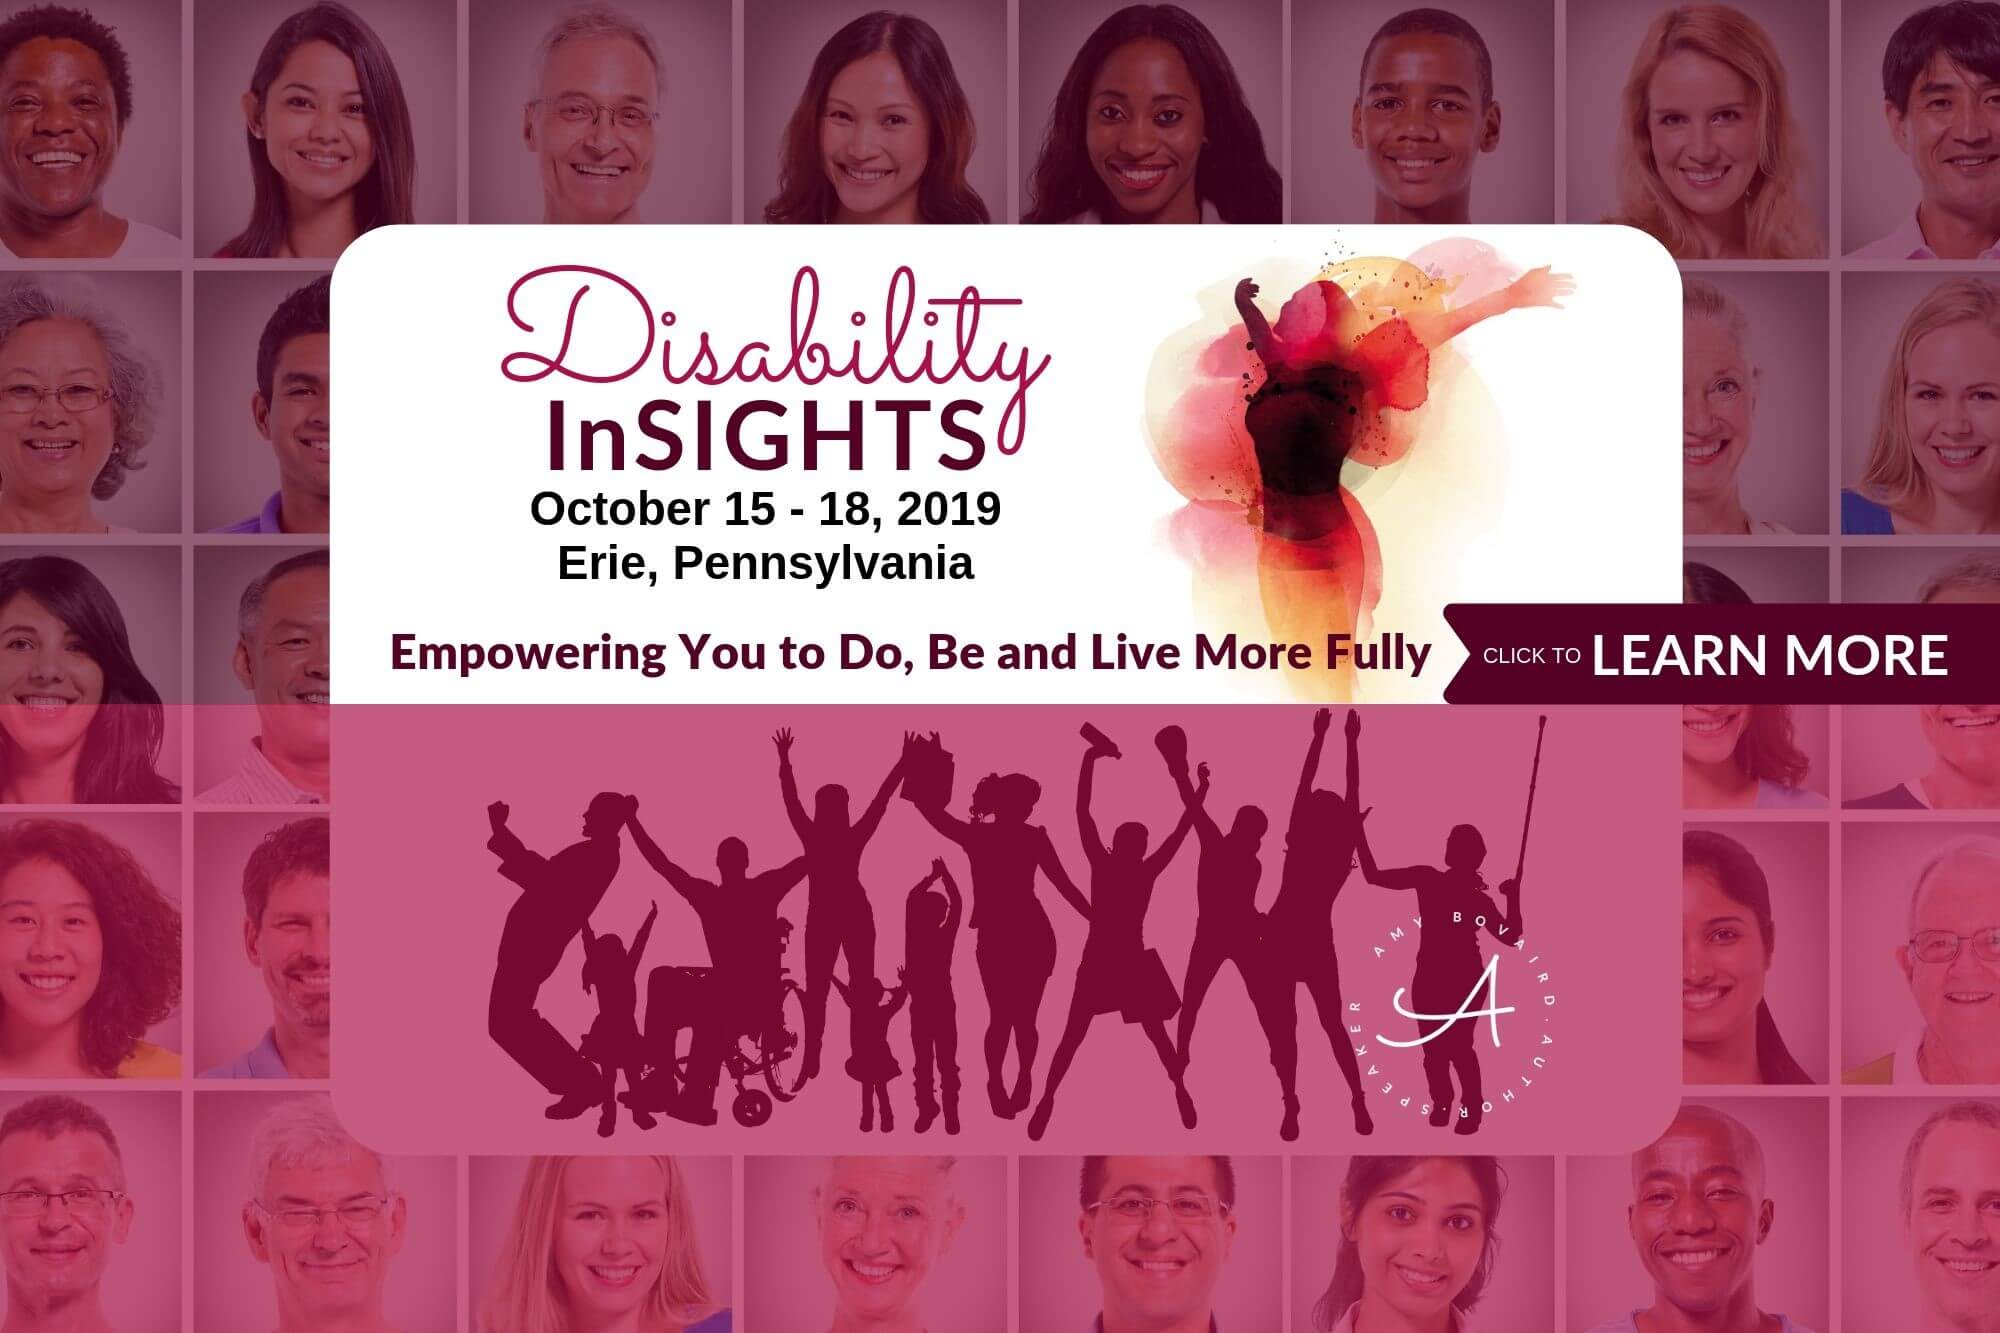 Disability InSIGHTS seminar image showing diverse people background with diverse people some with disabilities celebrating